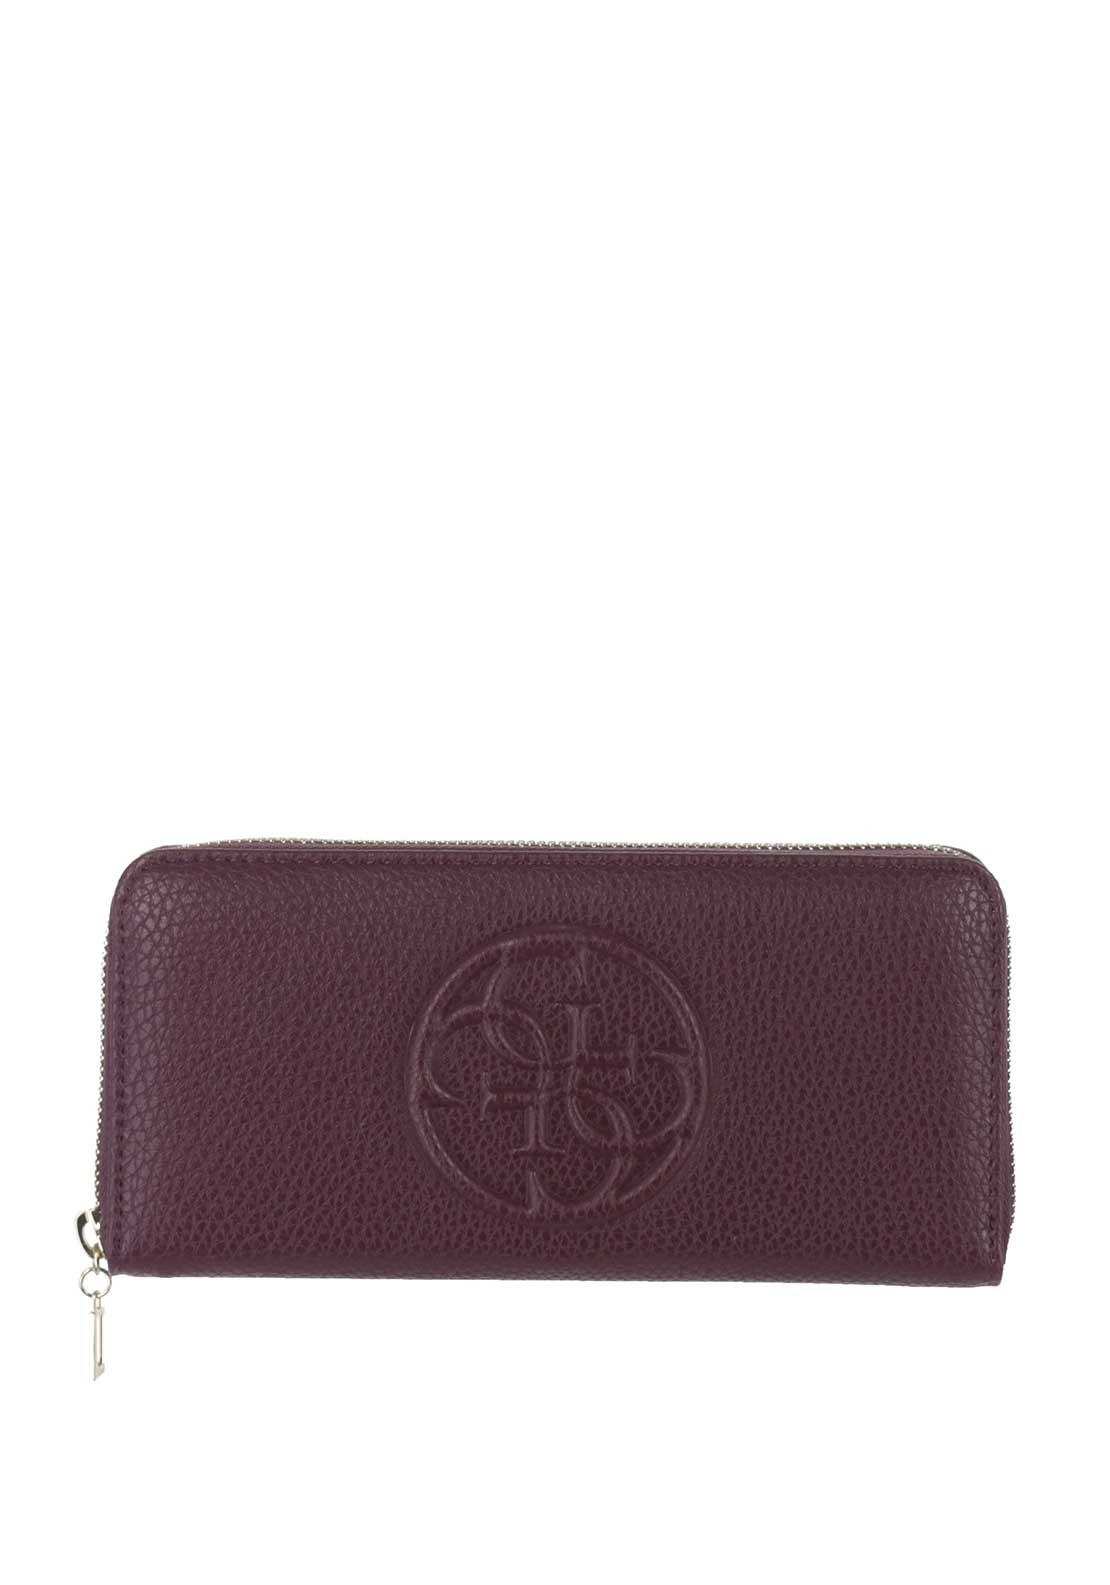 Guess Korry Crush SLG Zip Around Purse, Bordeaux